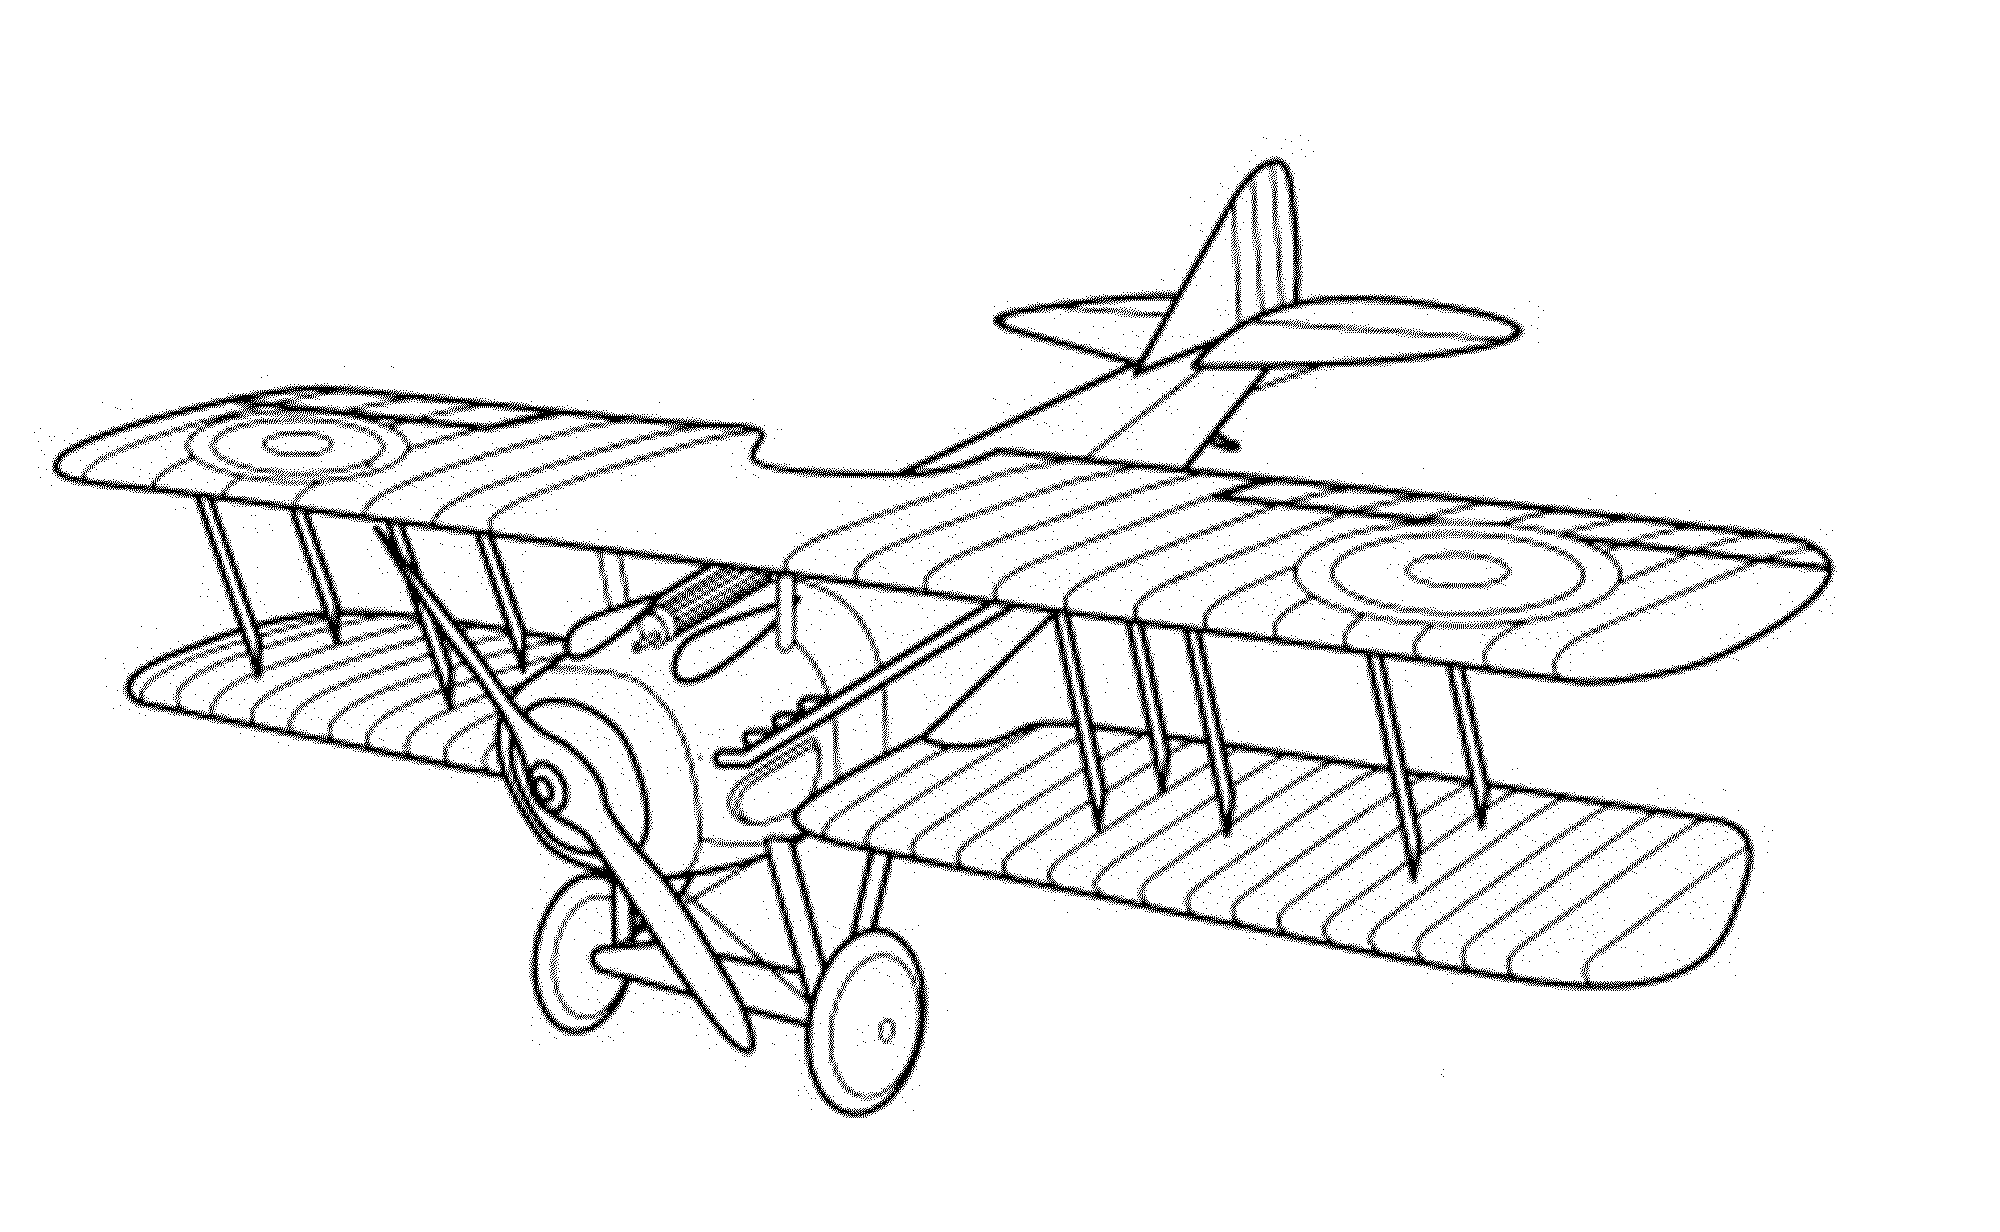 printable airplane coloring pages free printable airplane coloring pages for kids airplane printable coloring pages